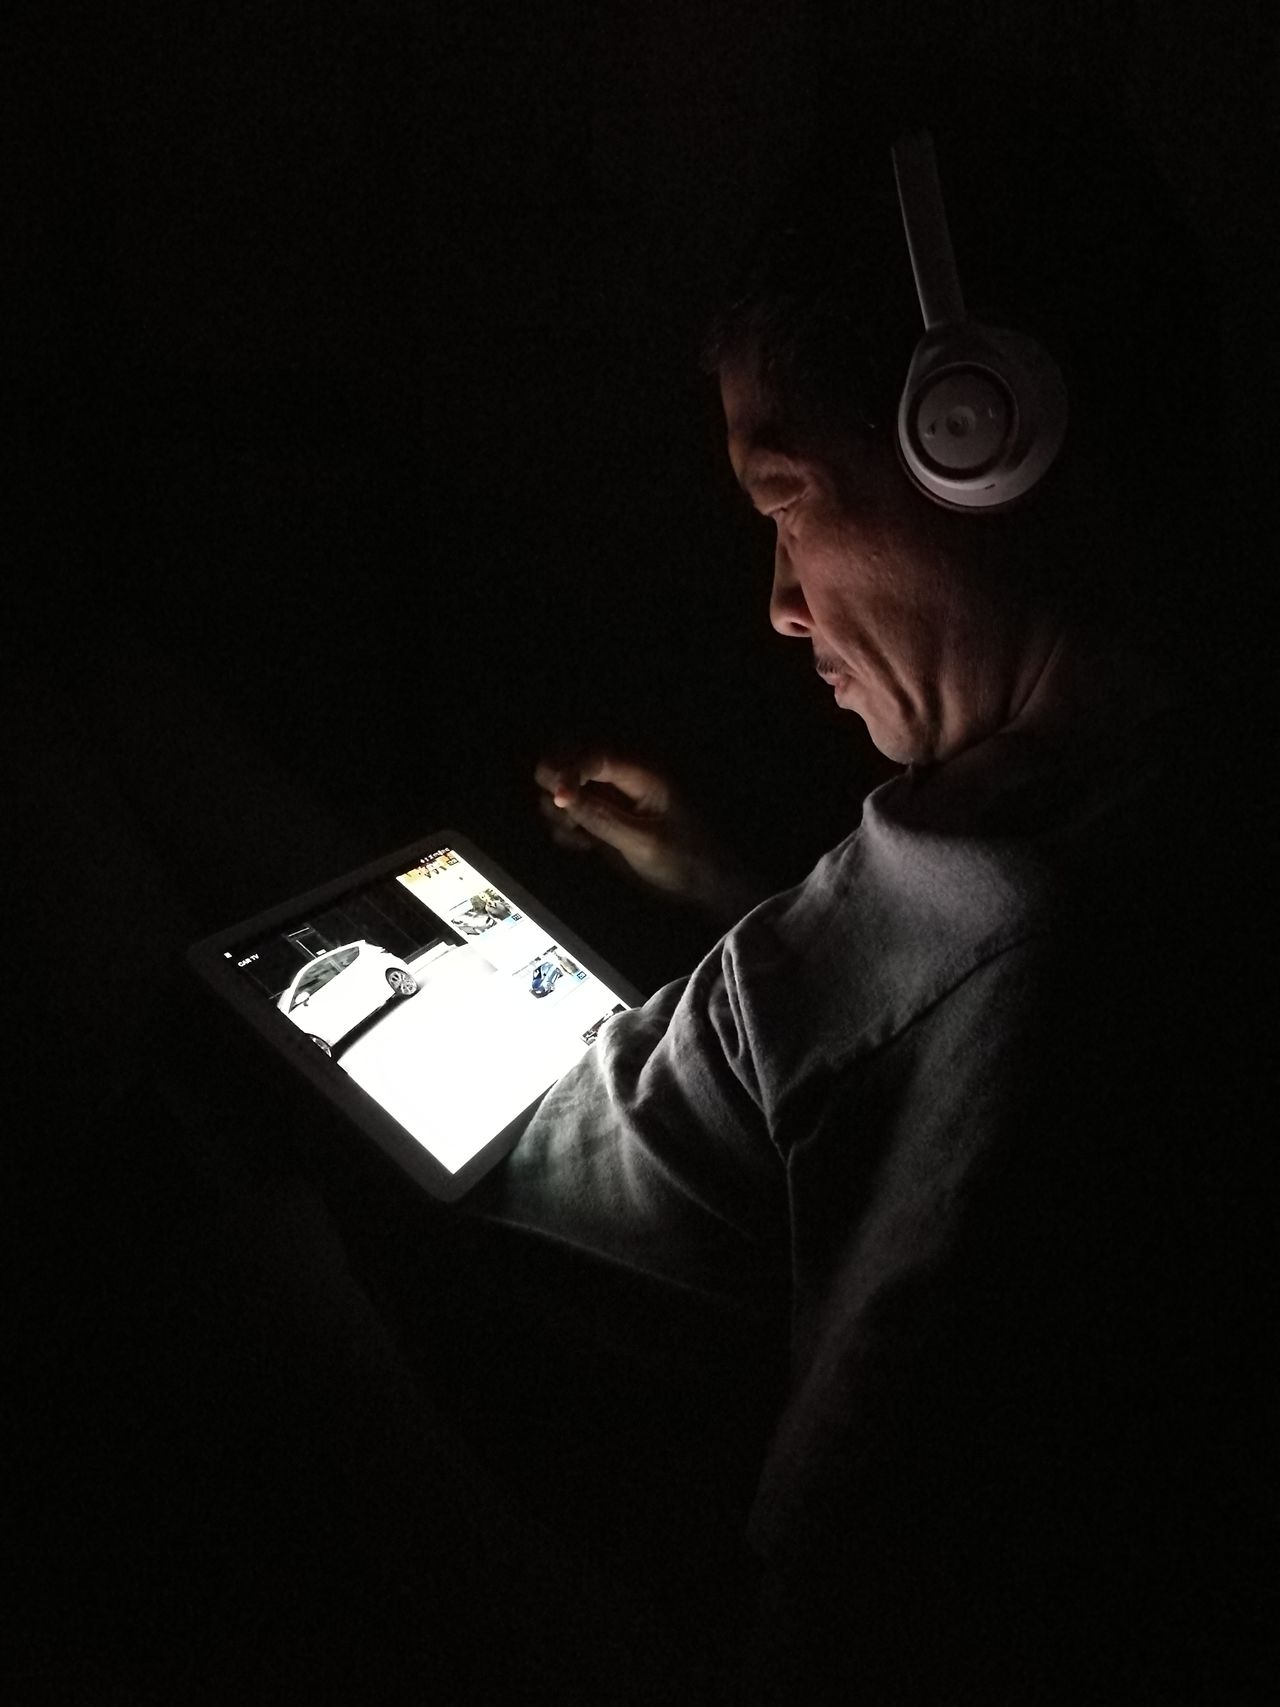 Connection One Man Only One Person Adults Only Indoors  Technology Internet Adult Music Black Background Human Body Part Headphones Lights And Shadows Lights And Shadows No Flash Profile Portraits Portrait Of A Man  Profile Shot Portrait Of A Man  Indoors  Full Concentration. The Portraitist - 2017 EyeEm Awards The Street Photographer - 2017 EyeEm Awards Night PhotographyConnection And Communication Tablet Device BYOPaper!